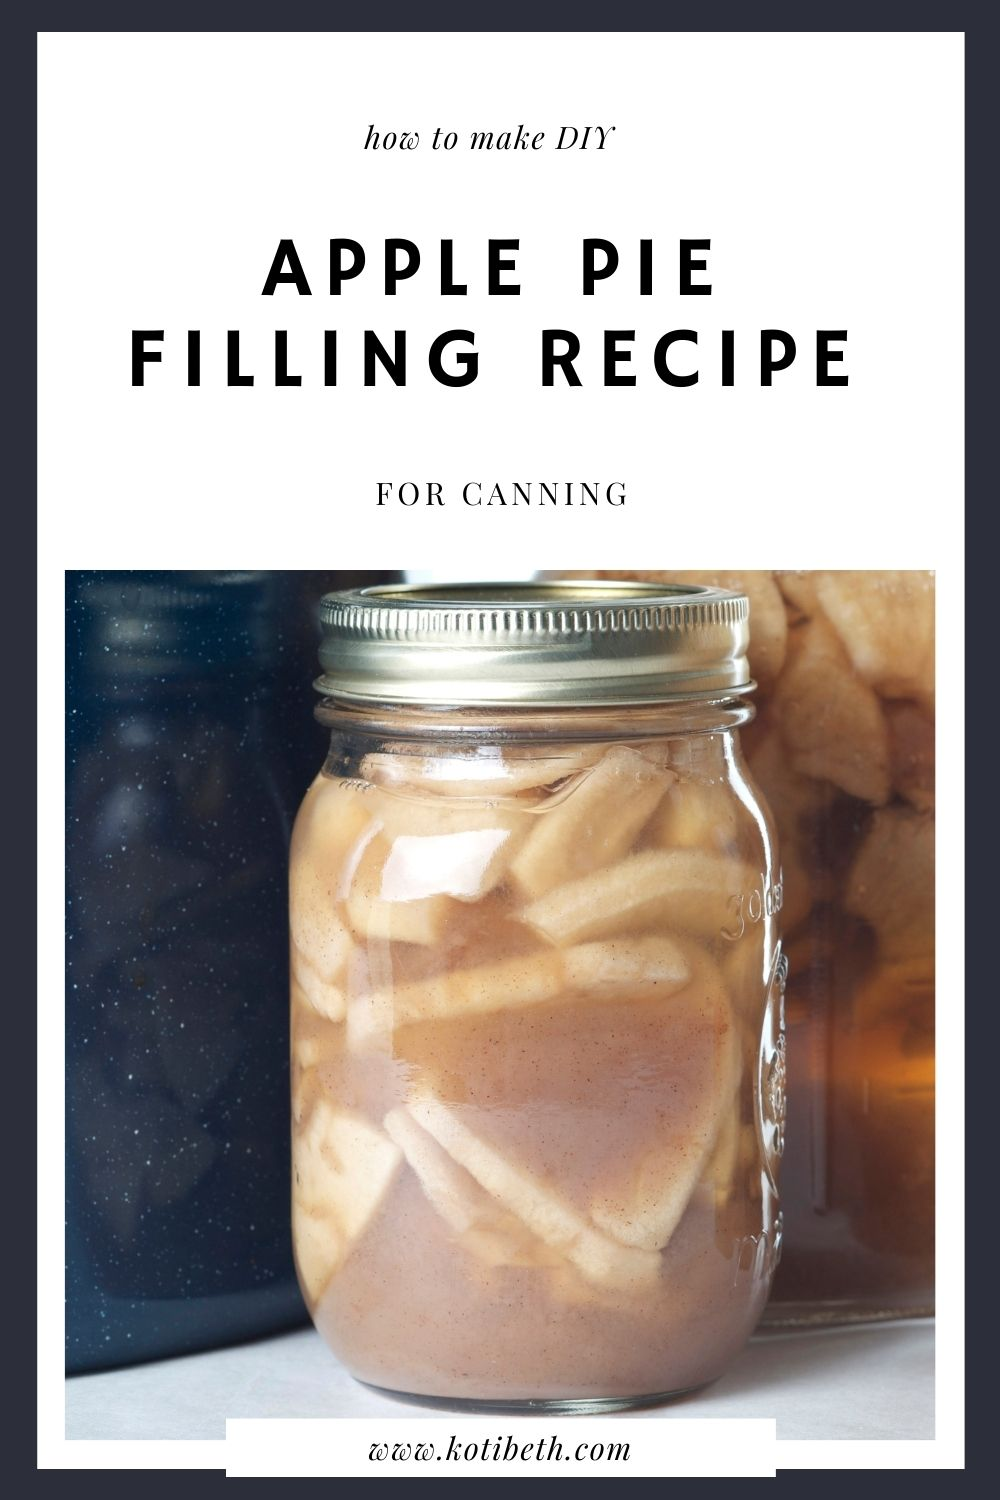 How to Make and Can Apple Pie Filling